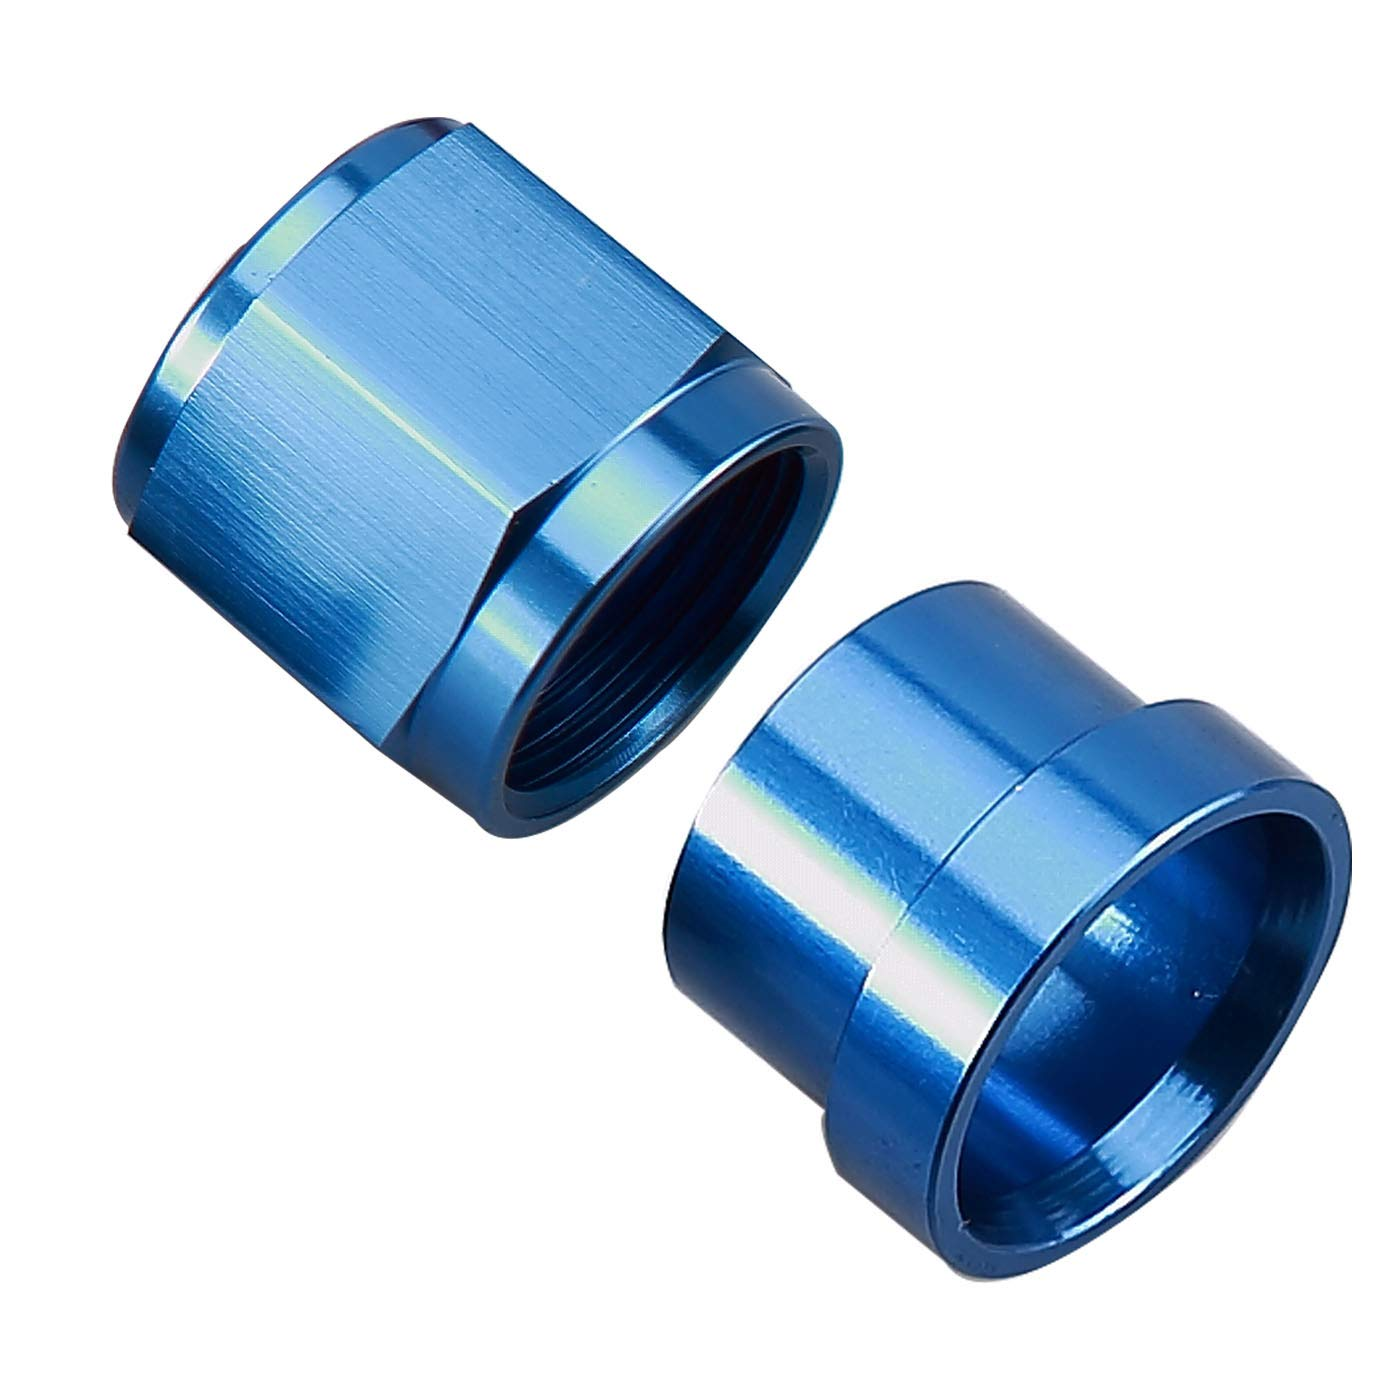 Pack of 2 Aluminum 1 NPT Thread Allen Head Socket Pipe Plugs Blue Anodized